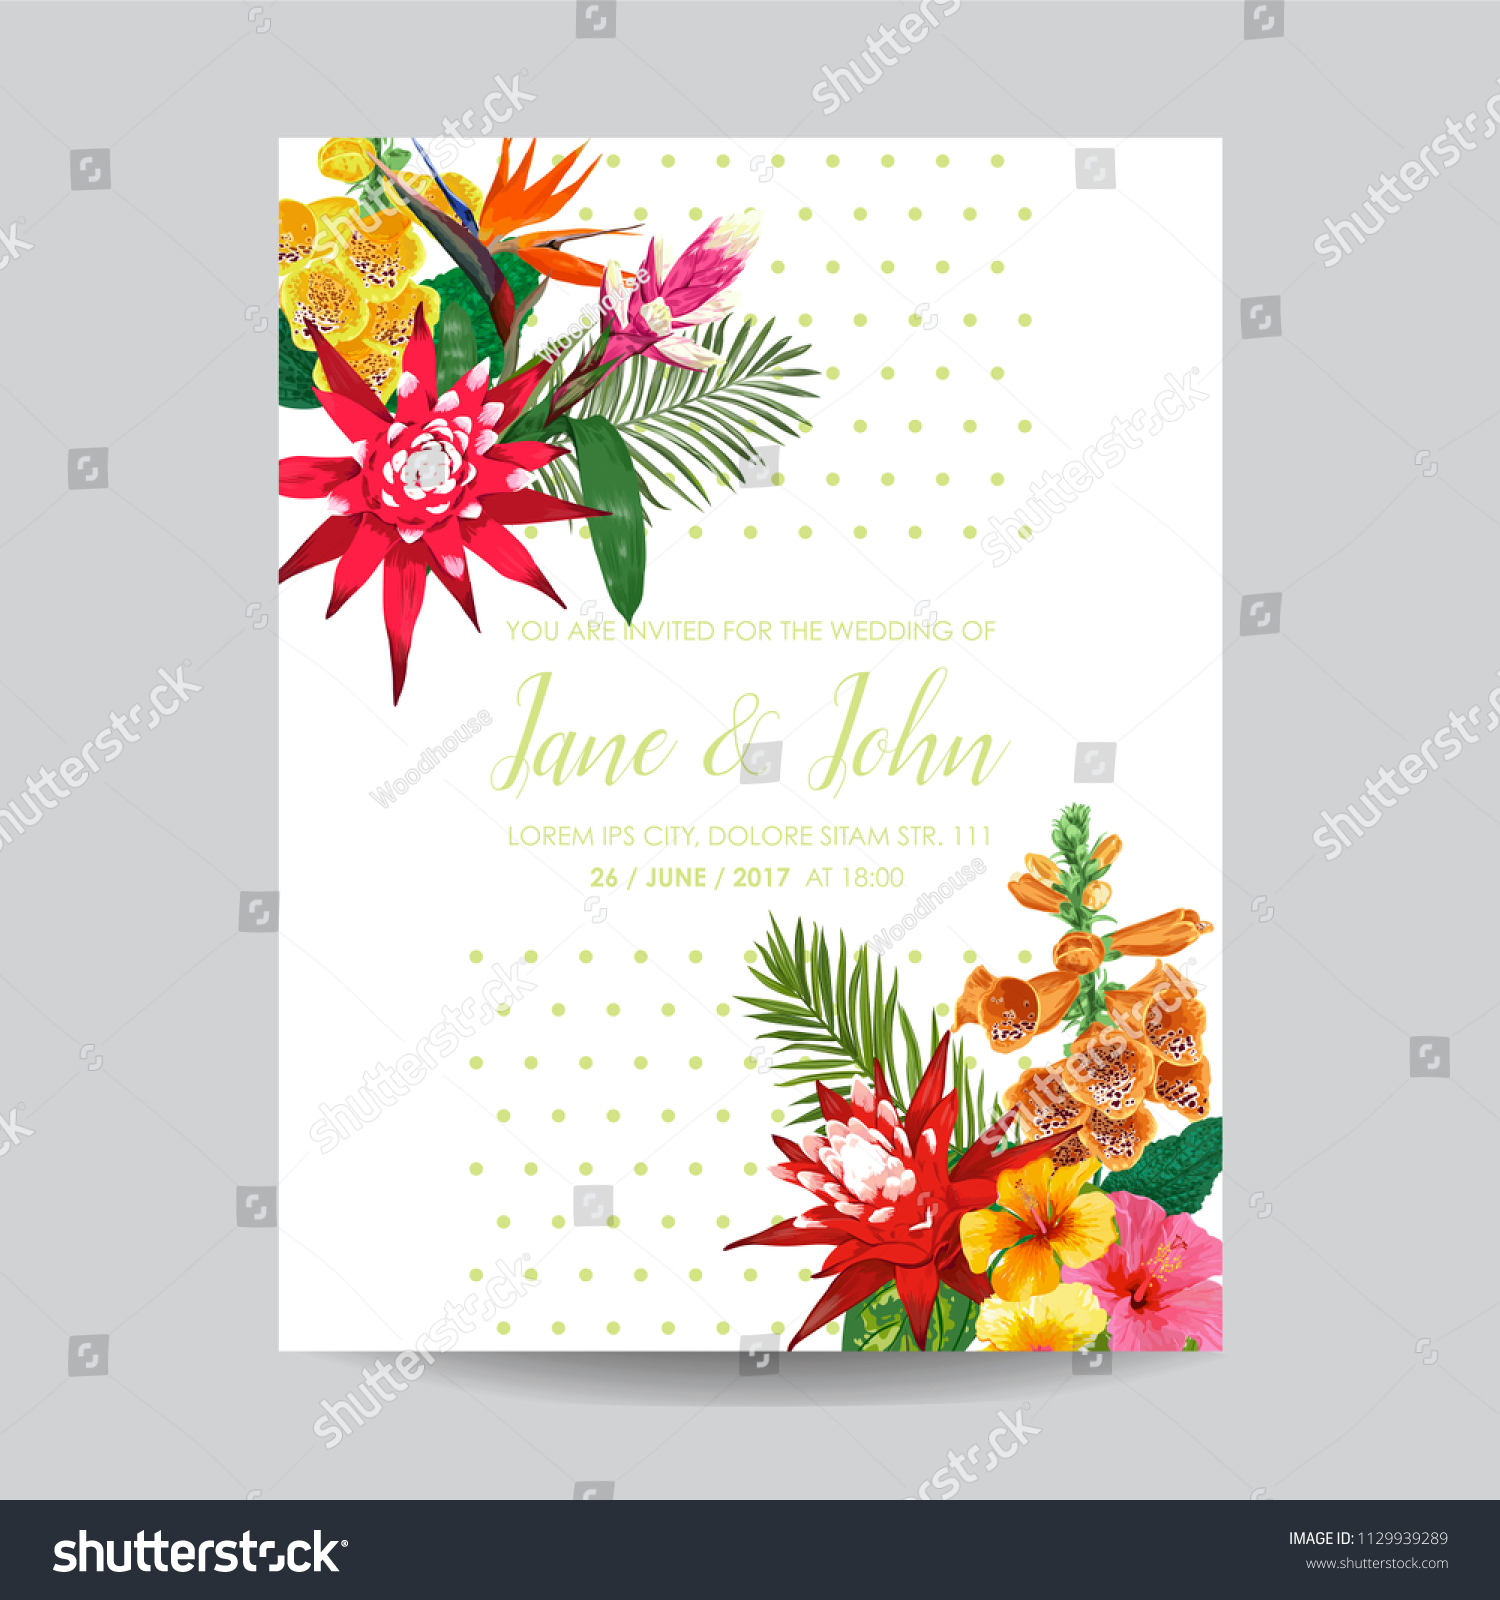 Wedding Invitation Template Tiger Lily Flowers Stock Vector ...